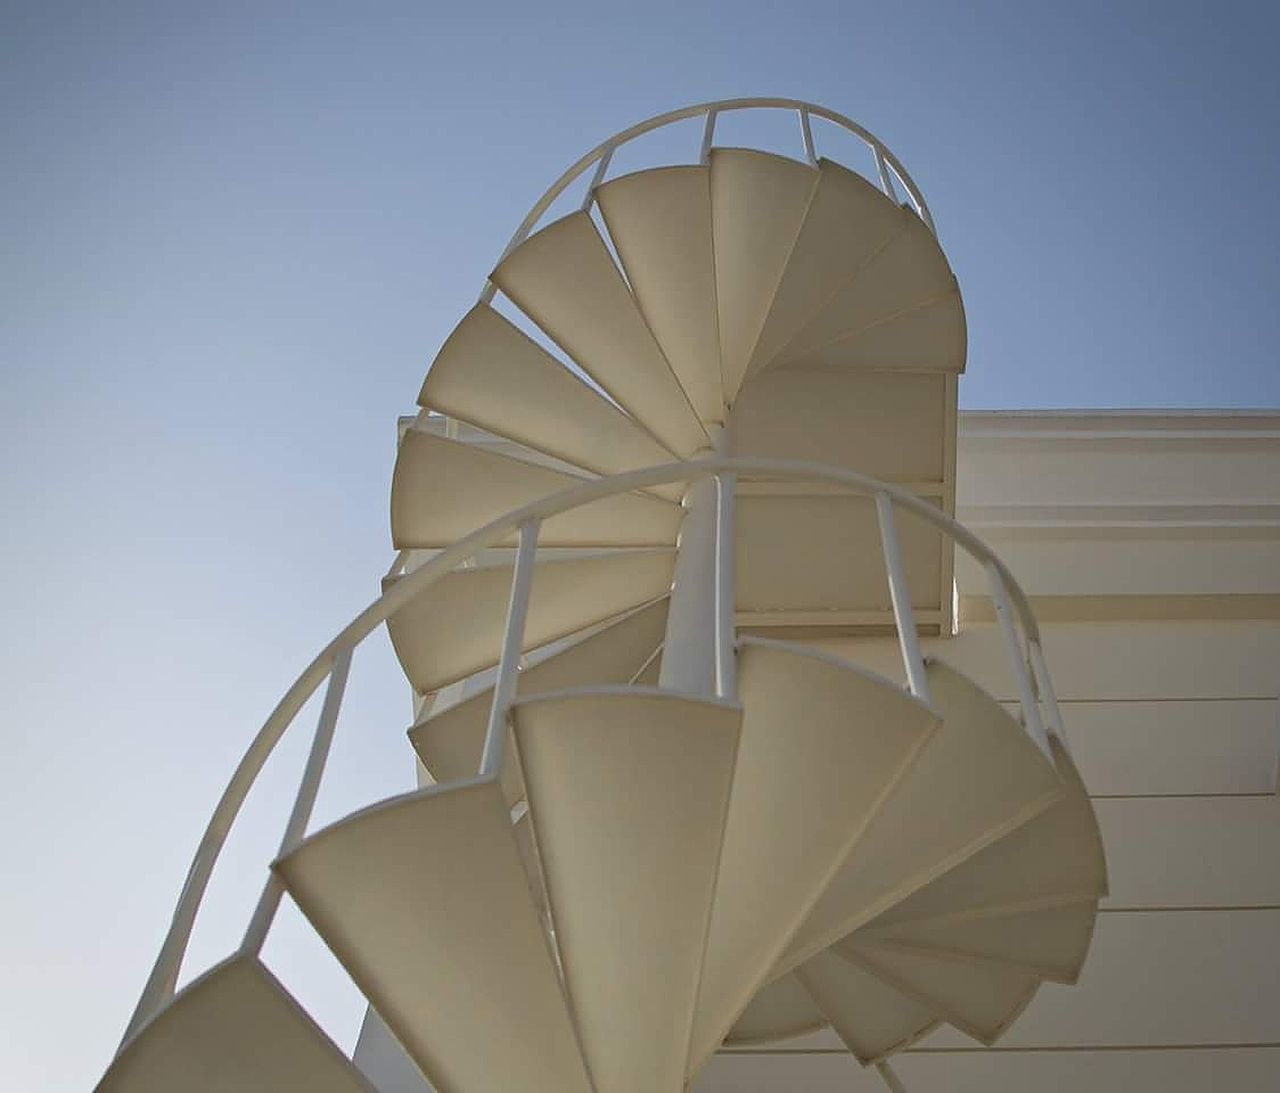 Staircase Eyeem Stairs Collection Minimalist Architecture Design House Sunshine Bluesky White Outdoors Abstract Dubailife The Architect - 2016 EyeEm Awards